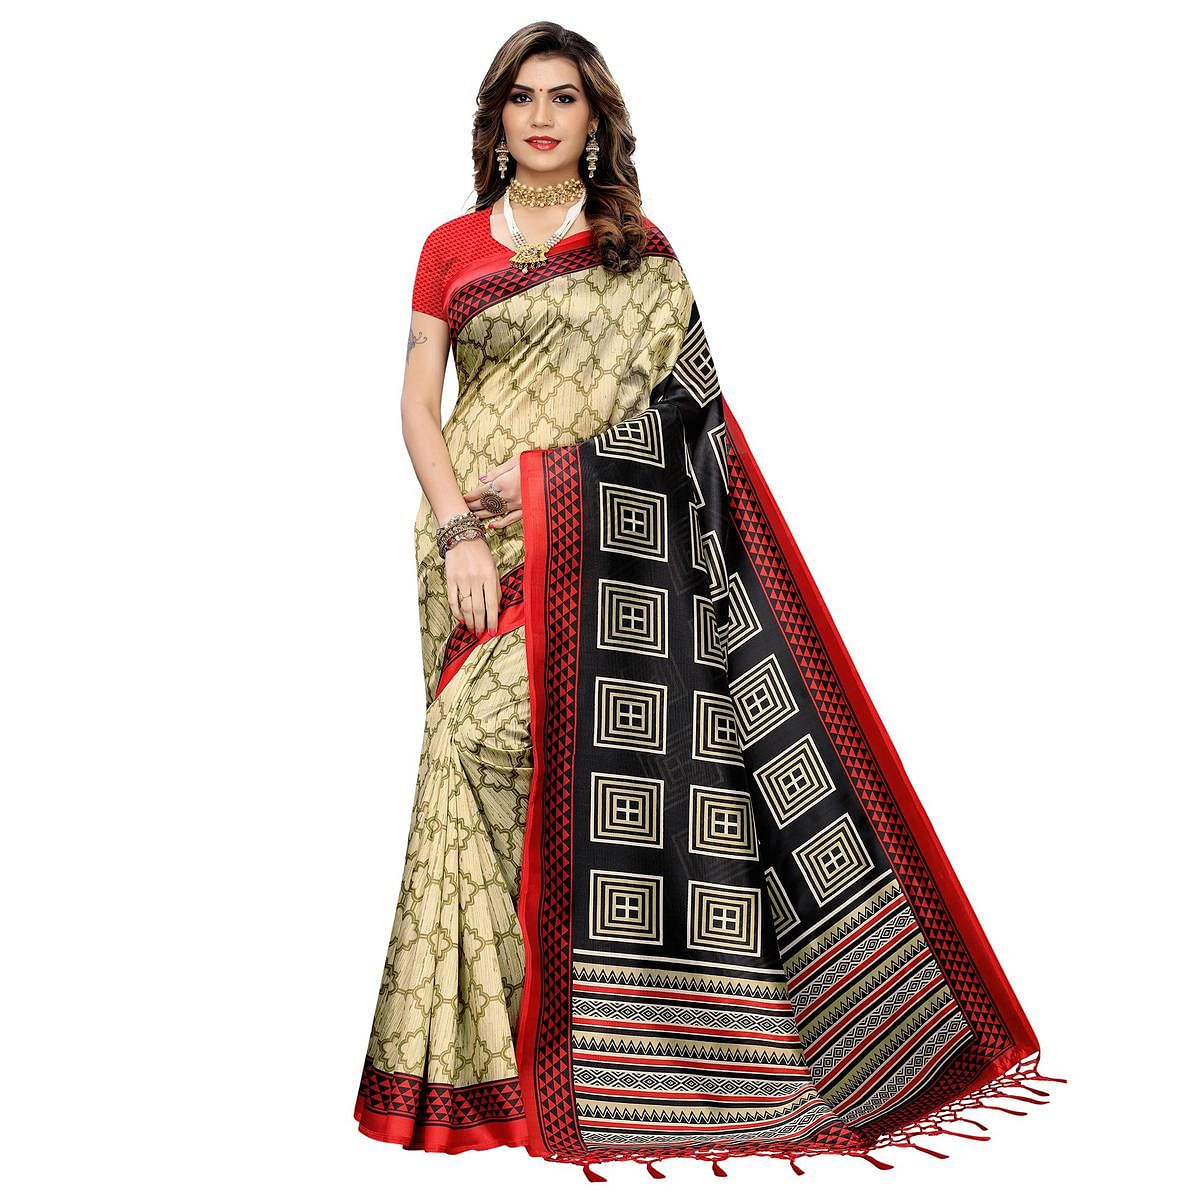 Gleaming Beige-Red Colored Festive Wear Printed Art Silk Saree With Tassels